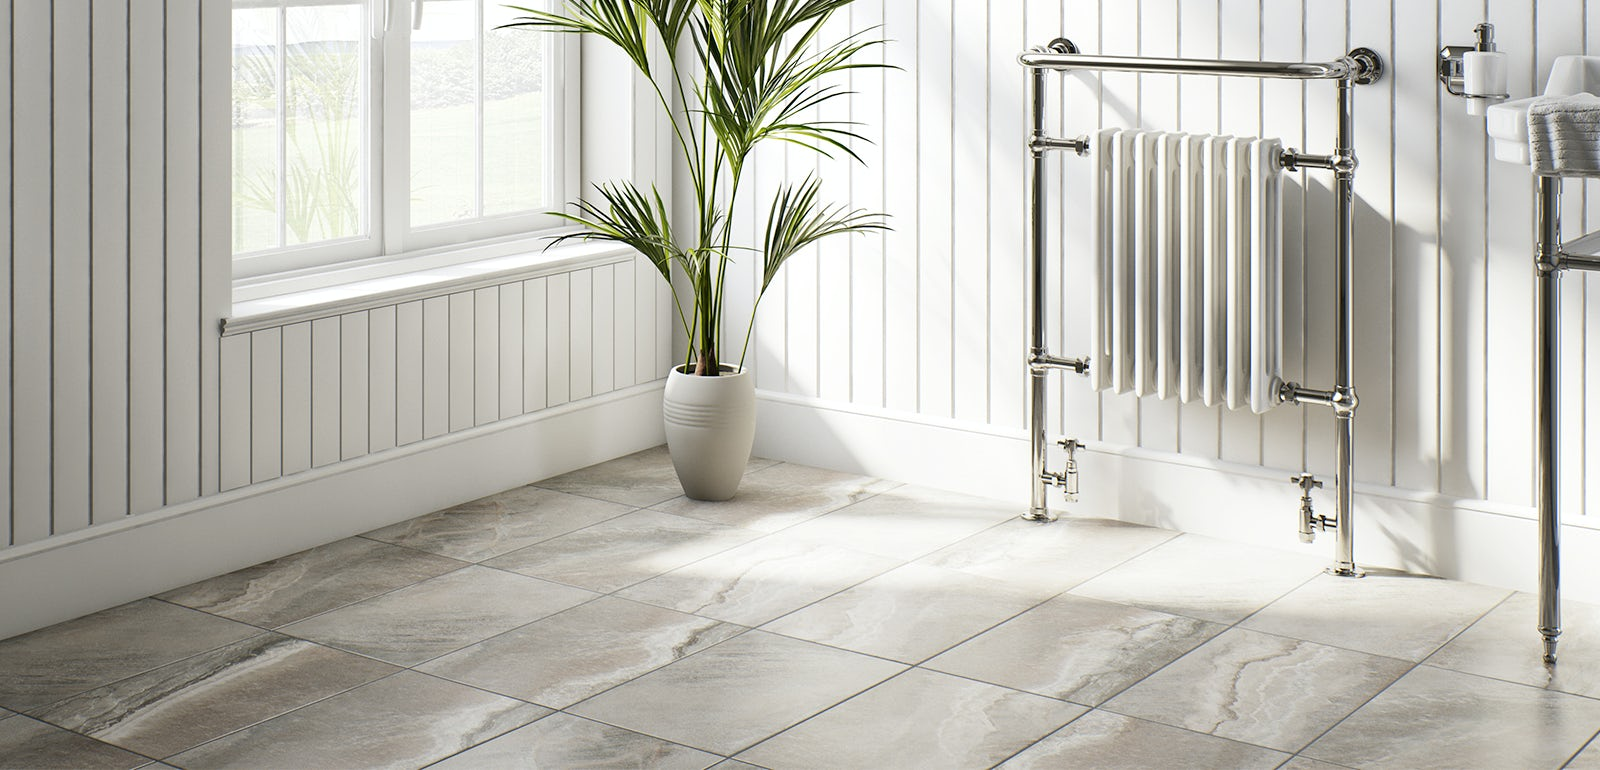 A black cast-iron radiator attached to a white-brick effect tiled wall